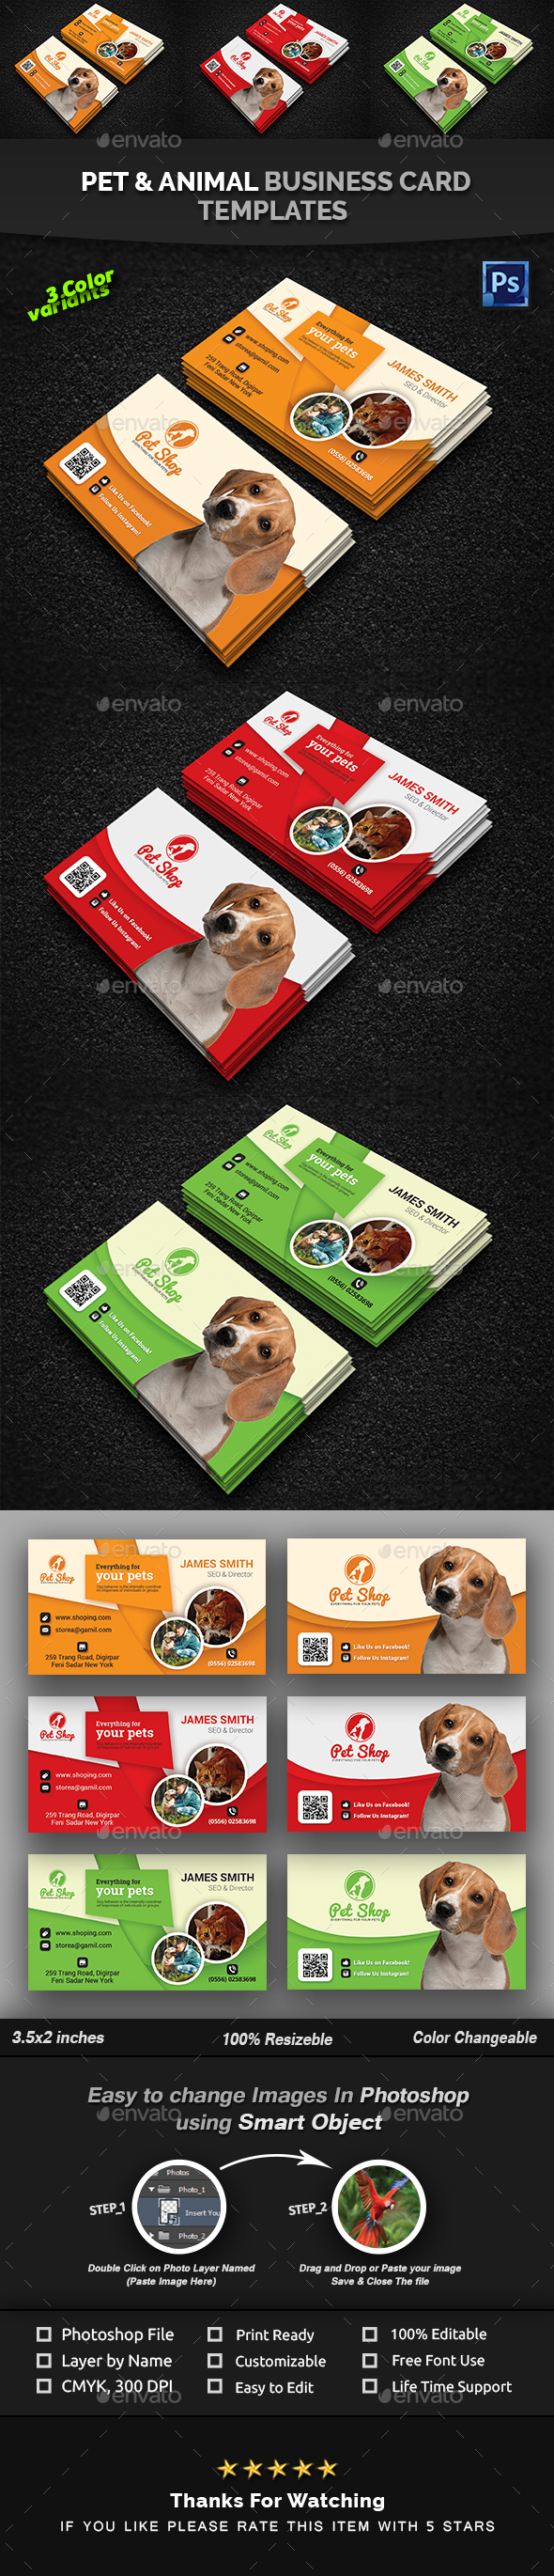 Pet Business Card | Animal Business Card Templates - Creative Business Cards